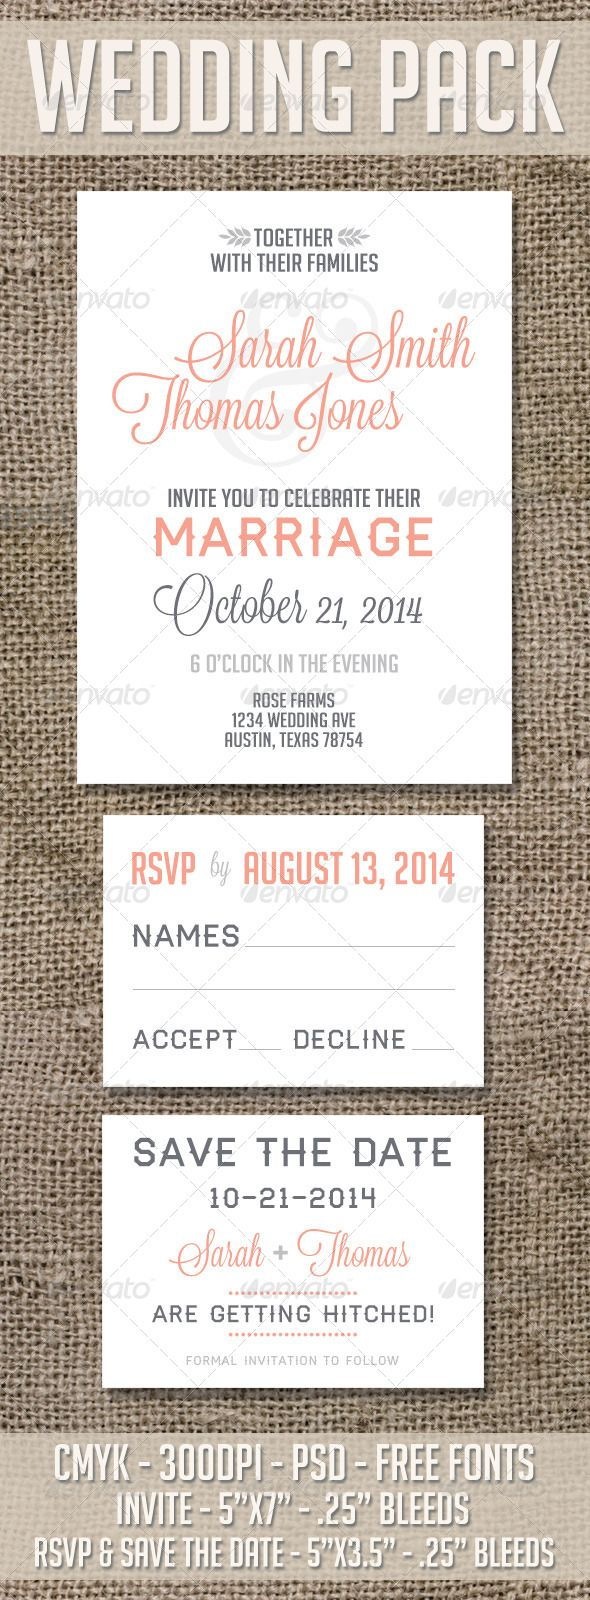 Wedding and Save the Date Pack | Personal taste, Rsvp and Wedding